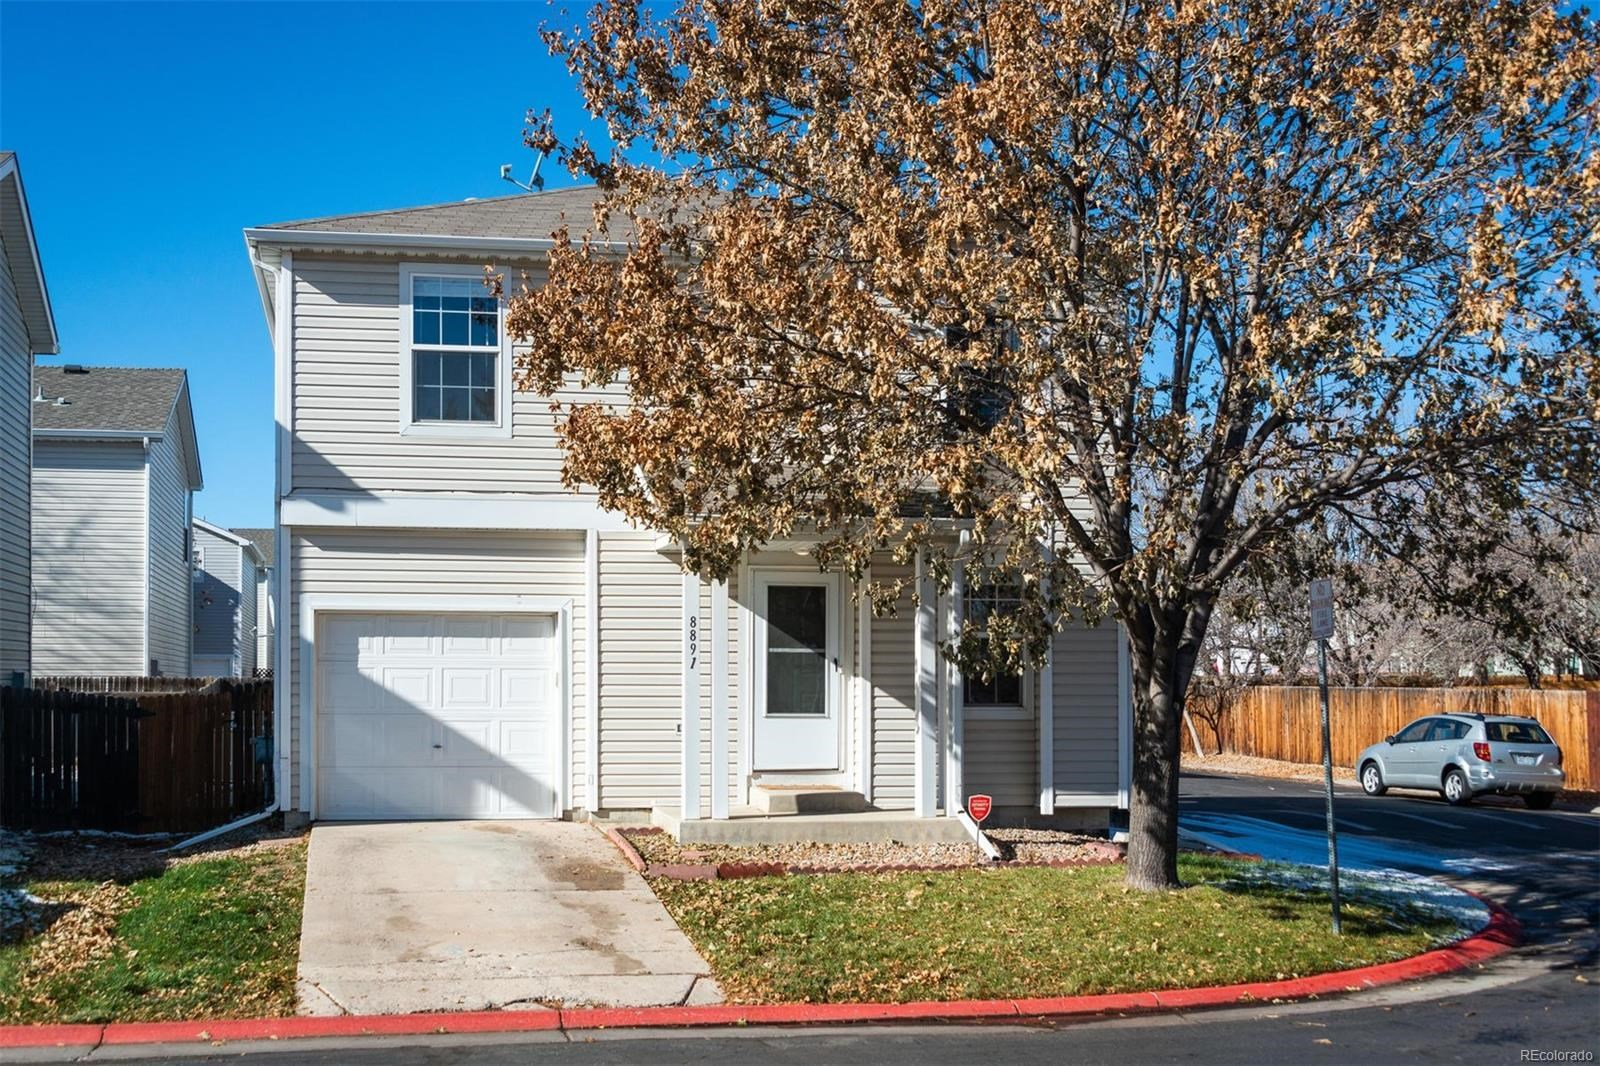 MLS# 6800957 - 1 - 8891 Lowell Way, Westminster, CO 80031